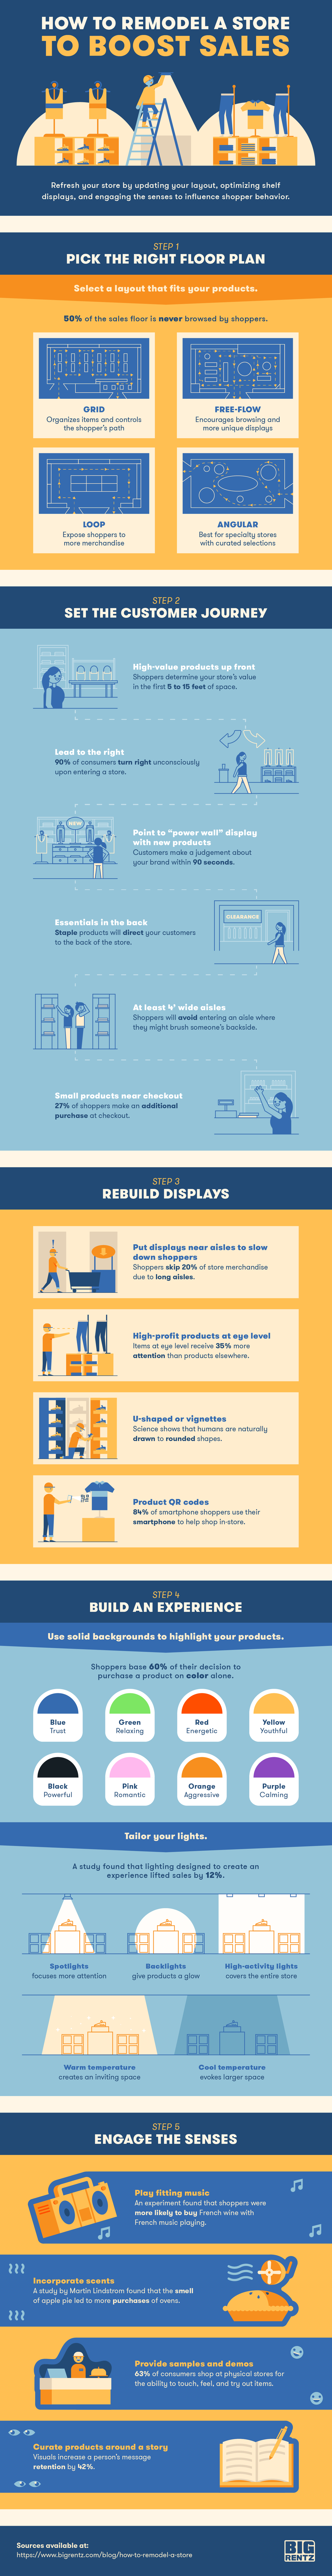 brick and mortar retail store remodeling infographic